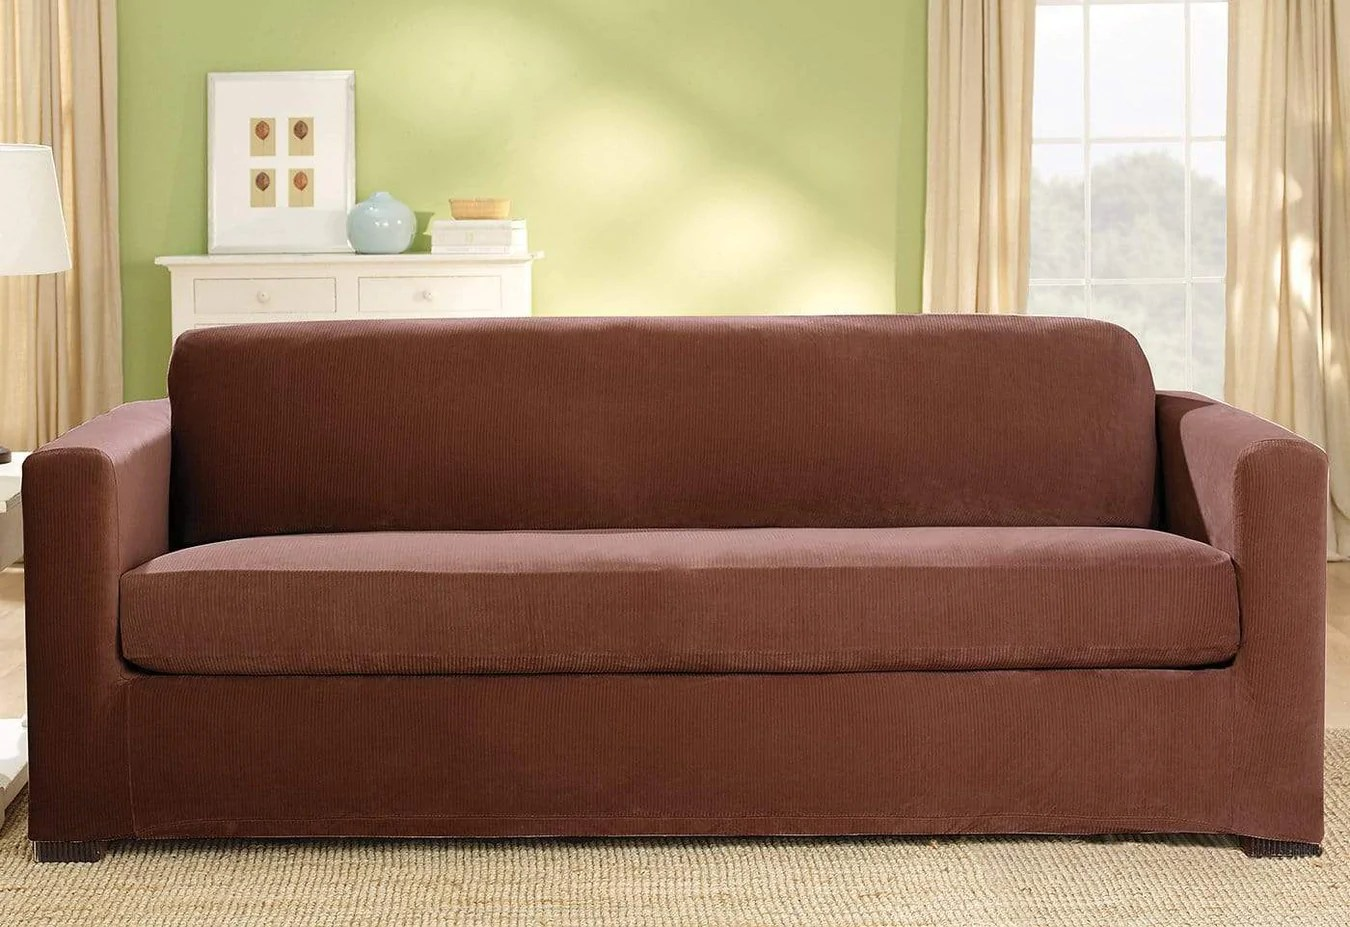 Corduroy 3 Seater Sofa Stretch Corduroy Three Piece With Back Cushion Sofa Slipcover